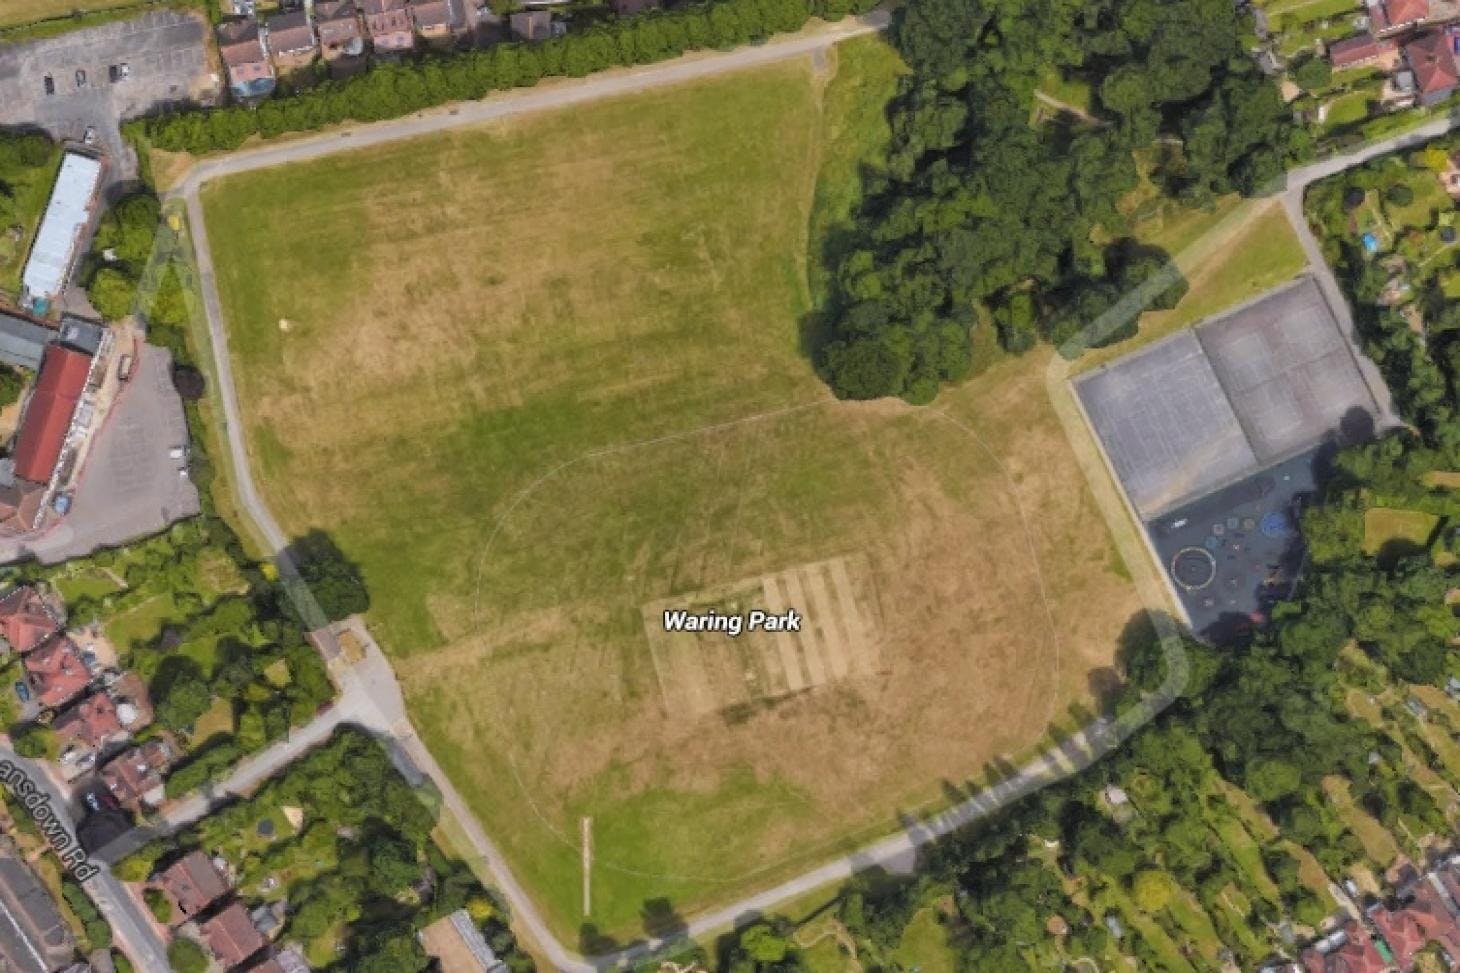 Waring Park 11 a side | Grass football pitch